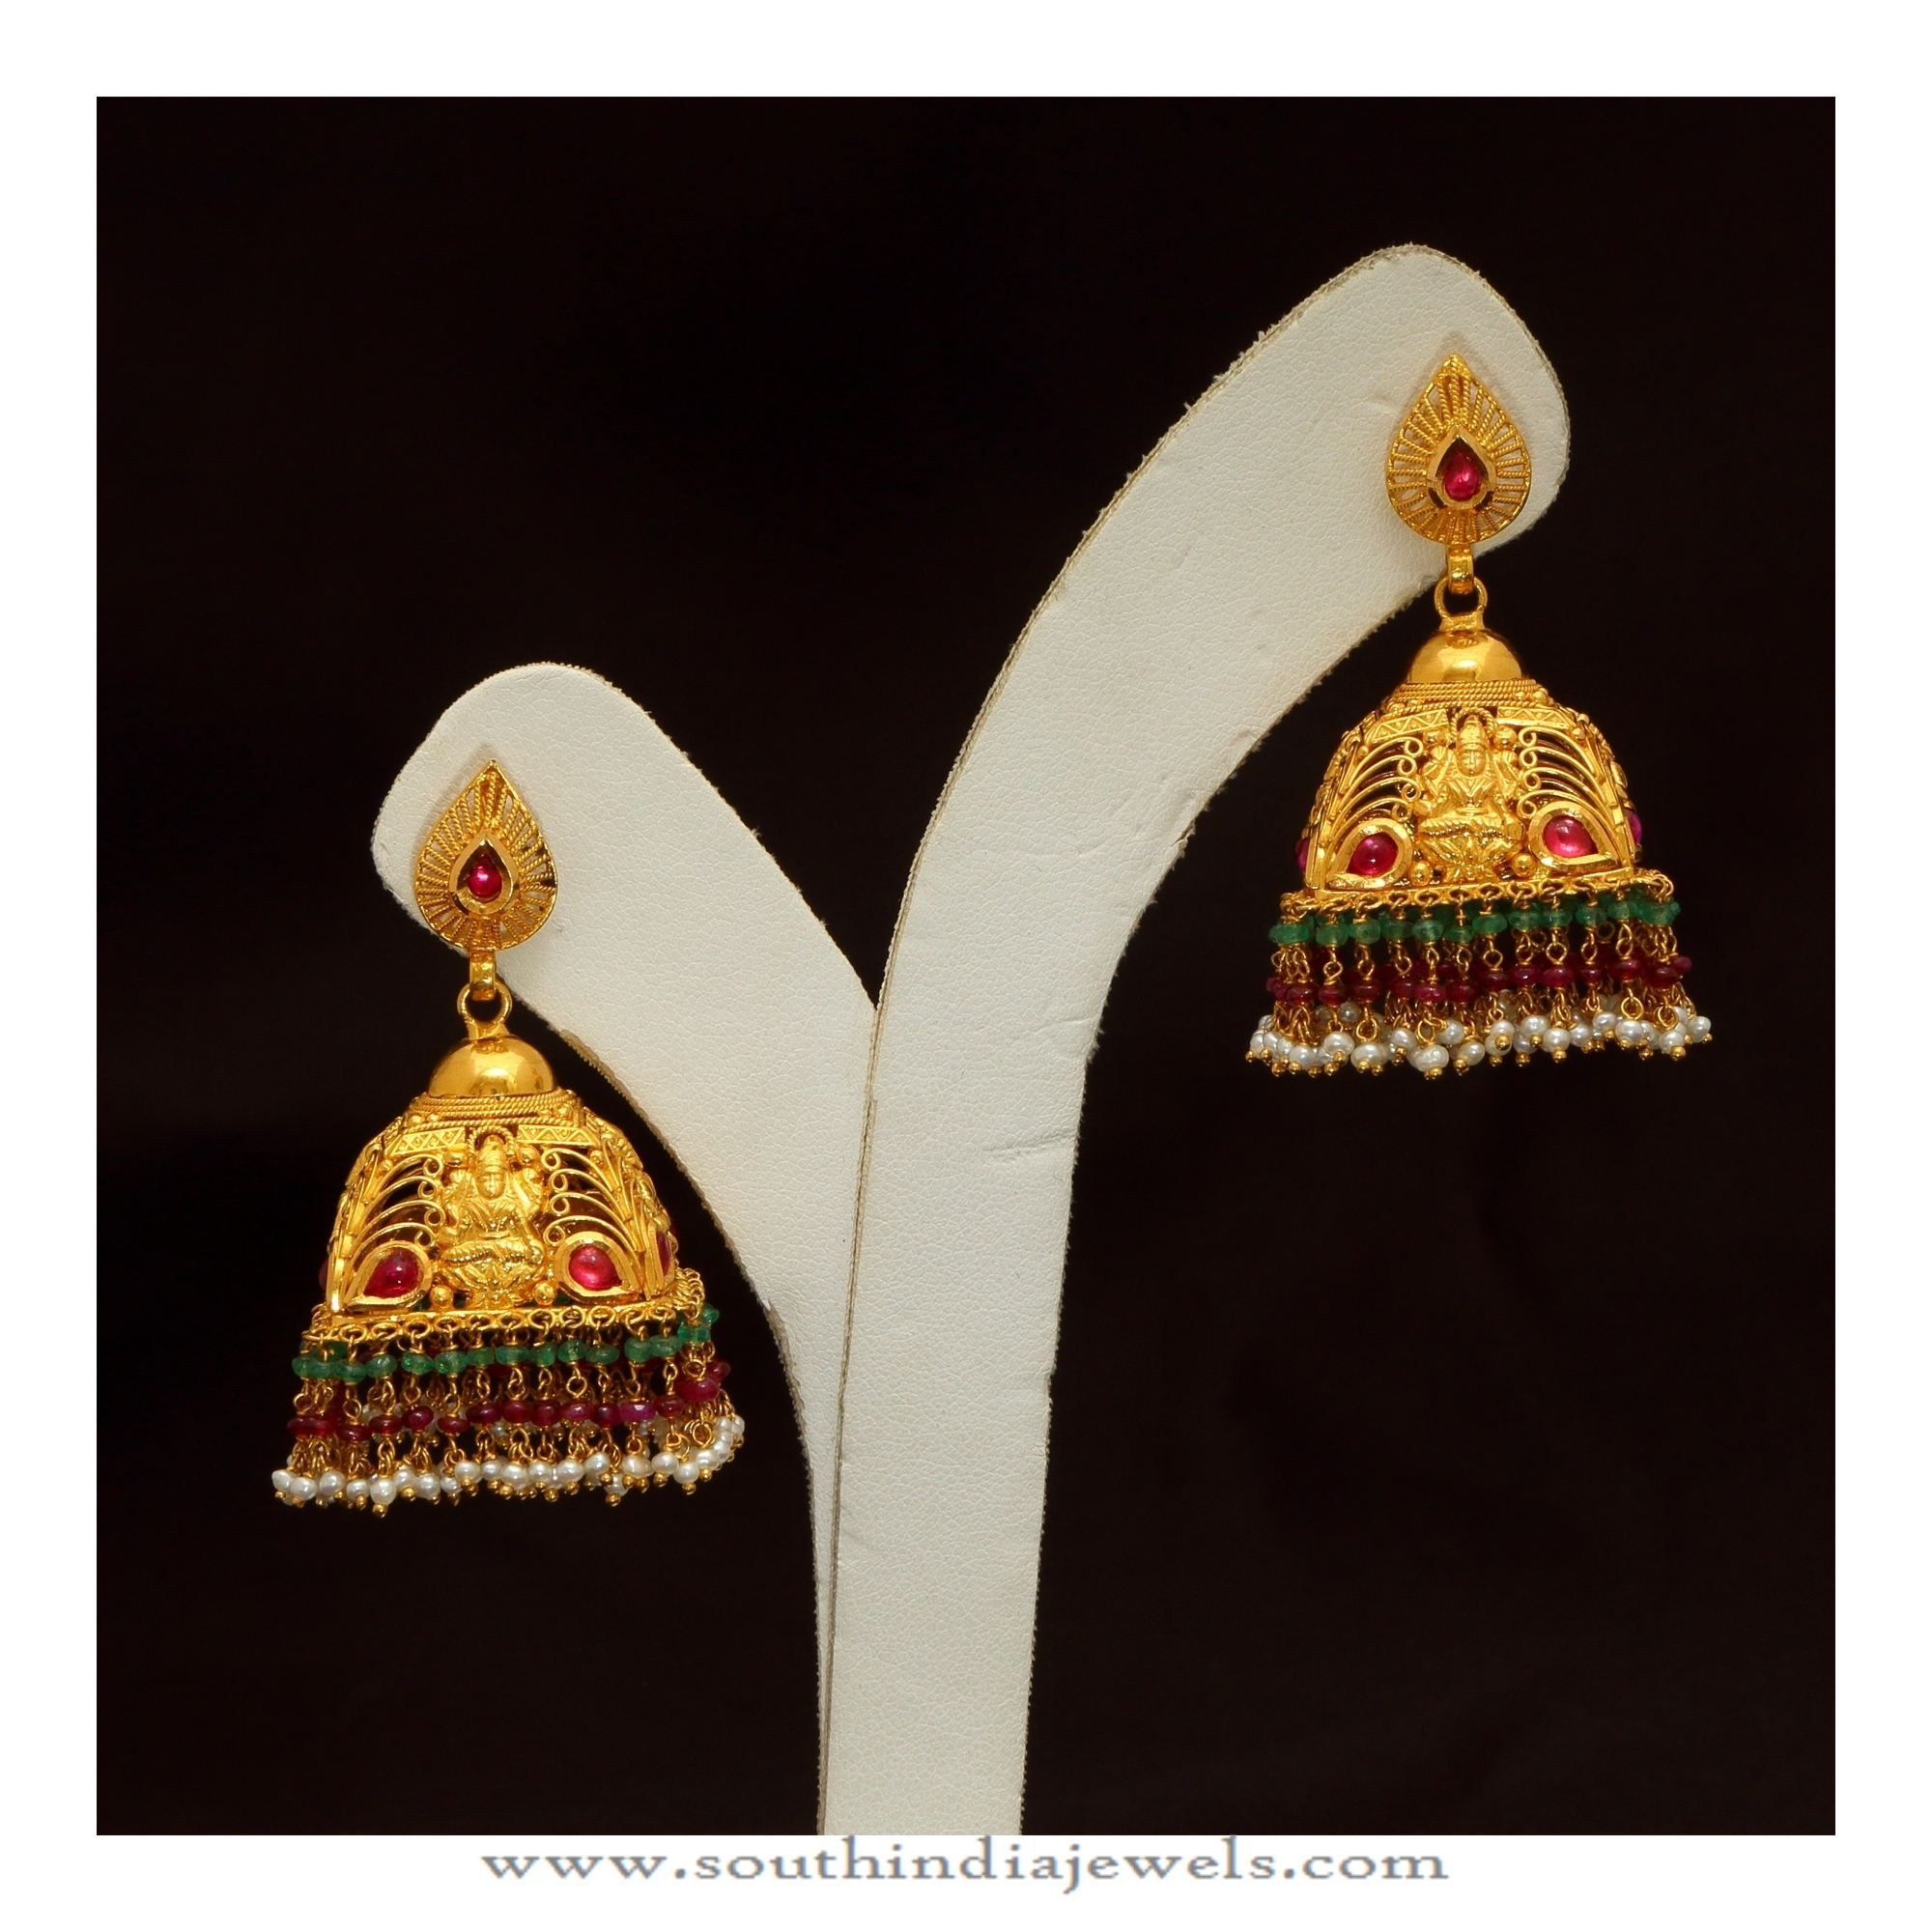 35 Grams Gold Antique Jhumka | Indian gold jewelry, Gold jewellery ...